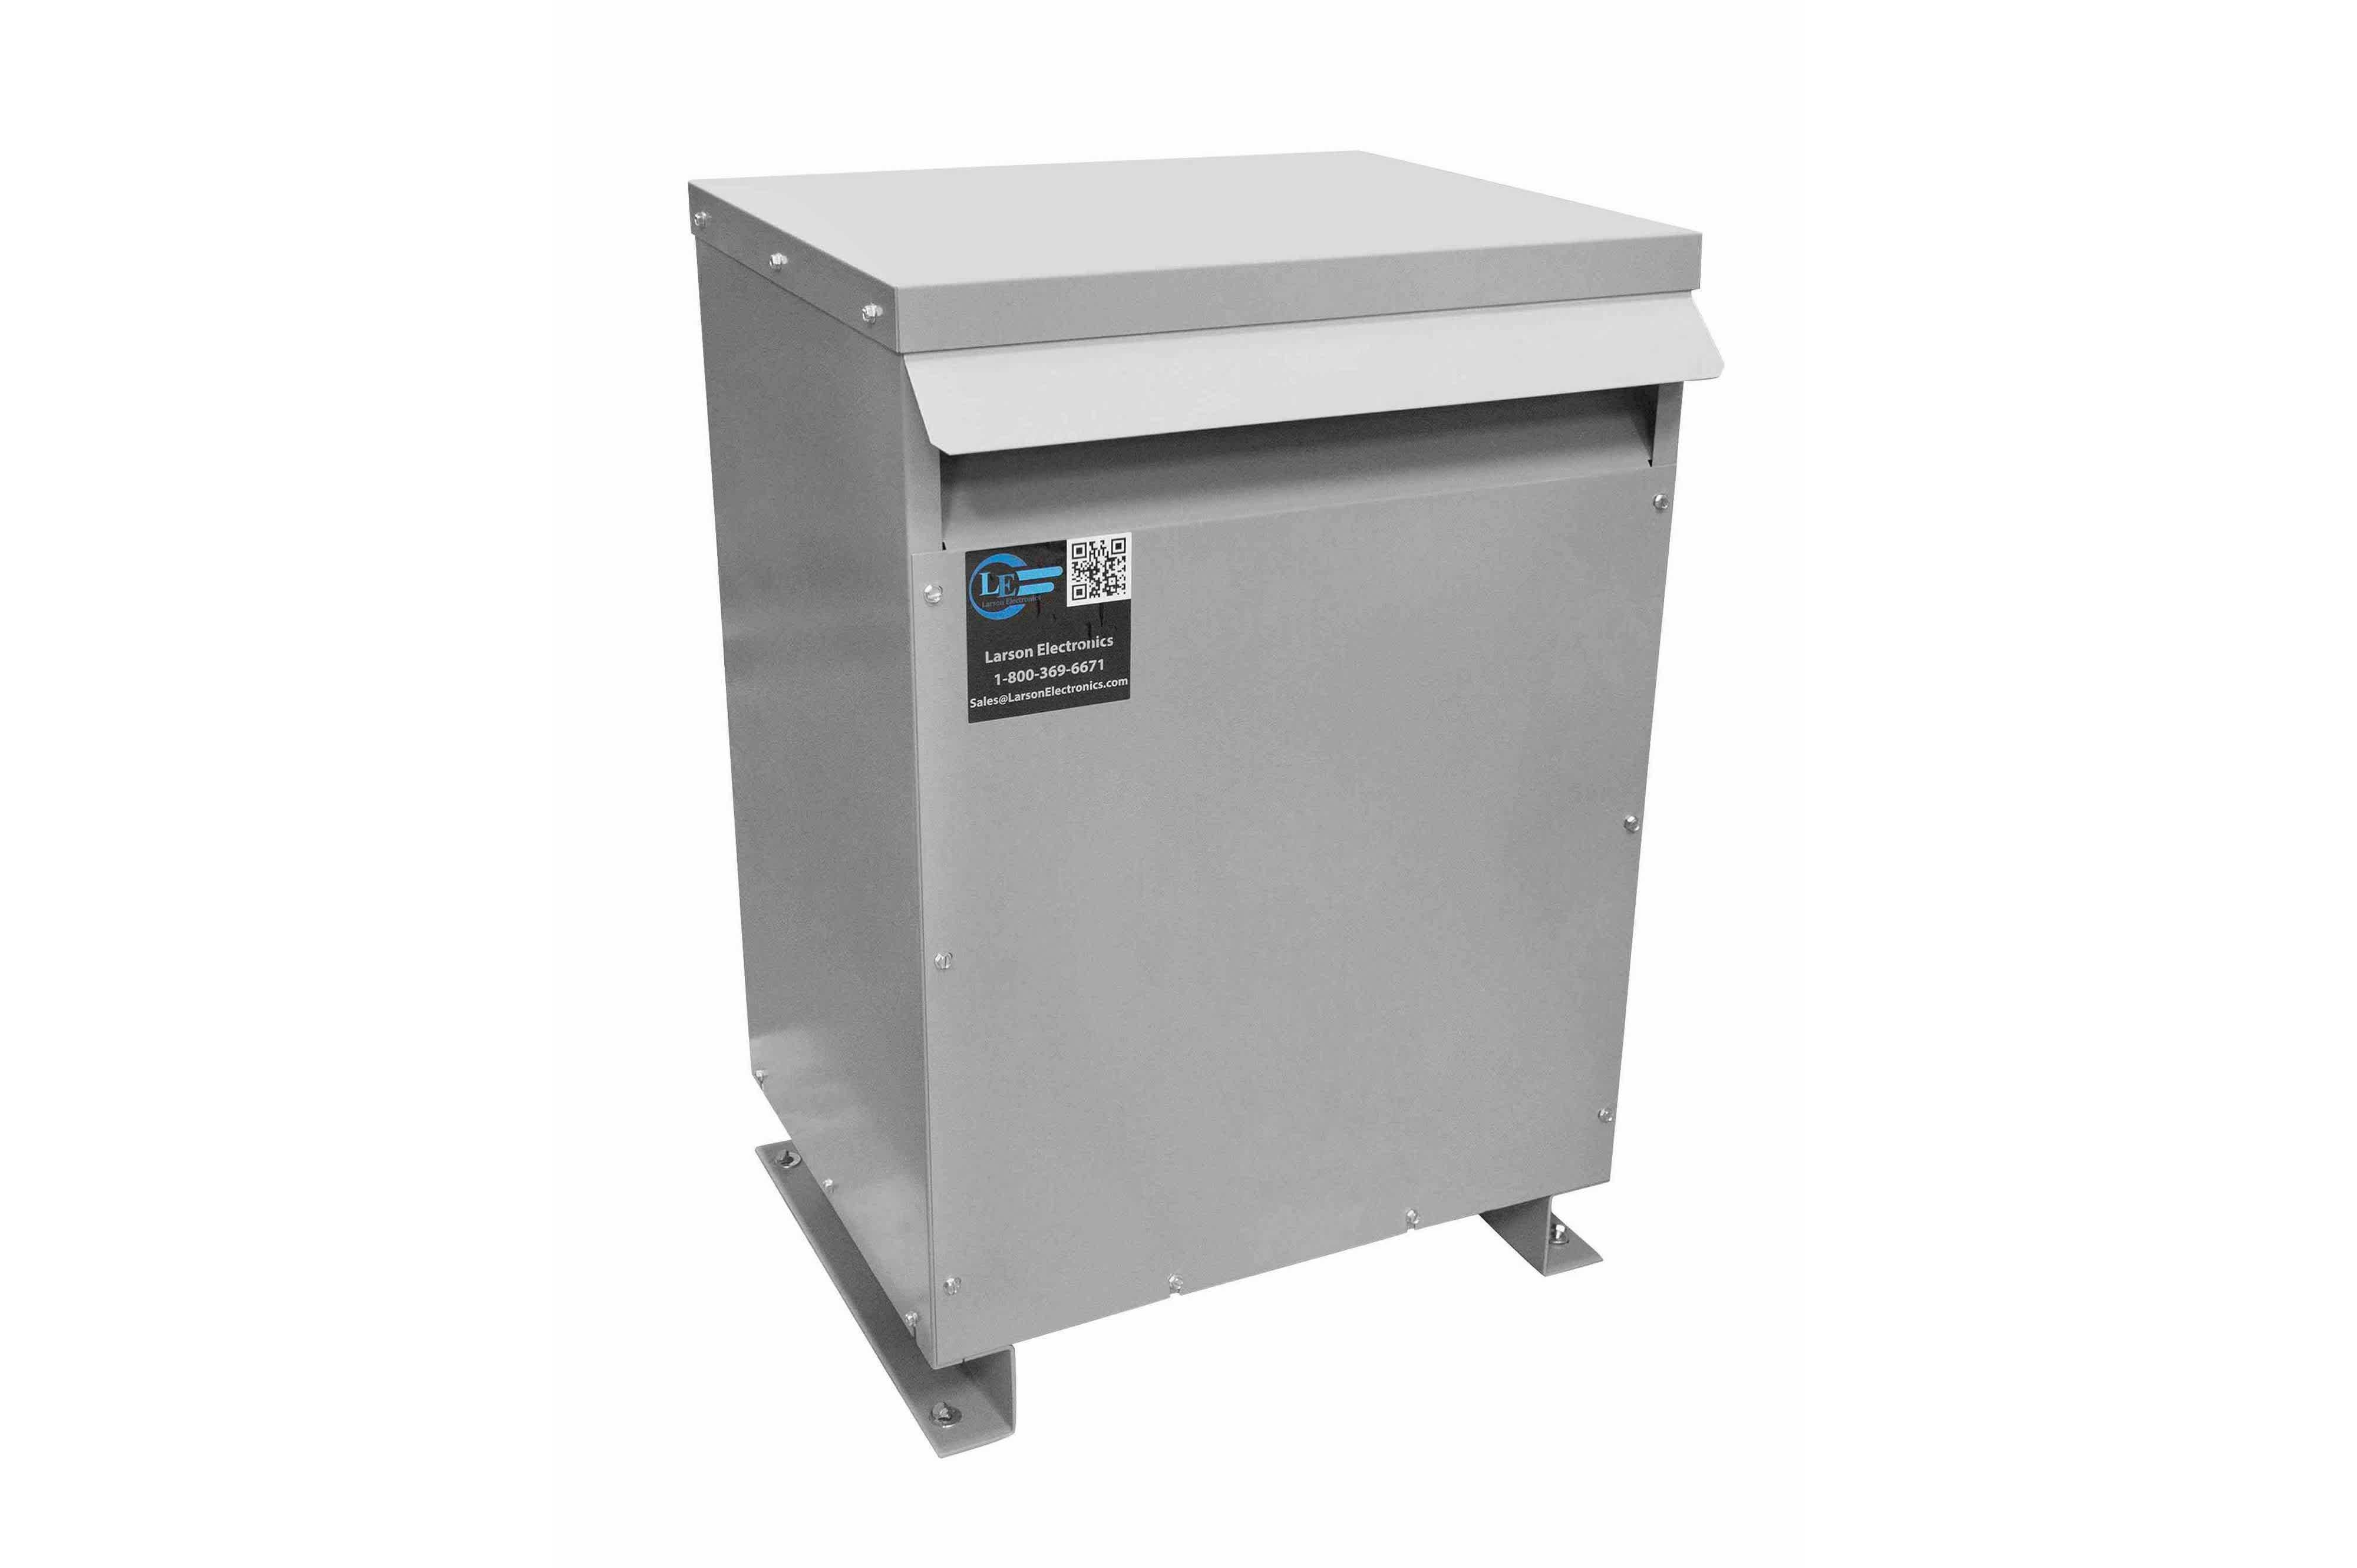 800 kVA 3PH Isolation Transformer, 240V Wye Primary, 480Y/277 Wye-N Secondary, N3R, Ventilated, 60 Hz